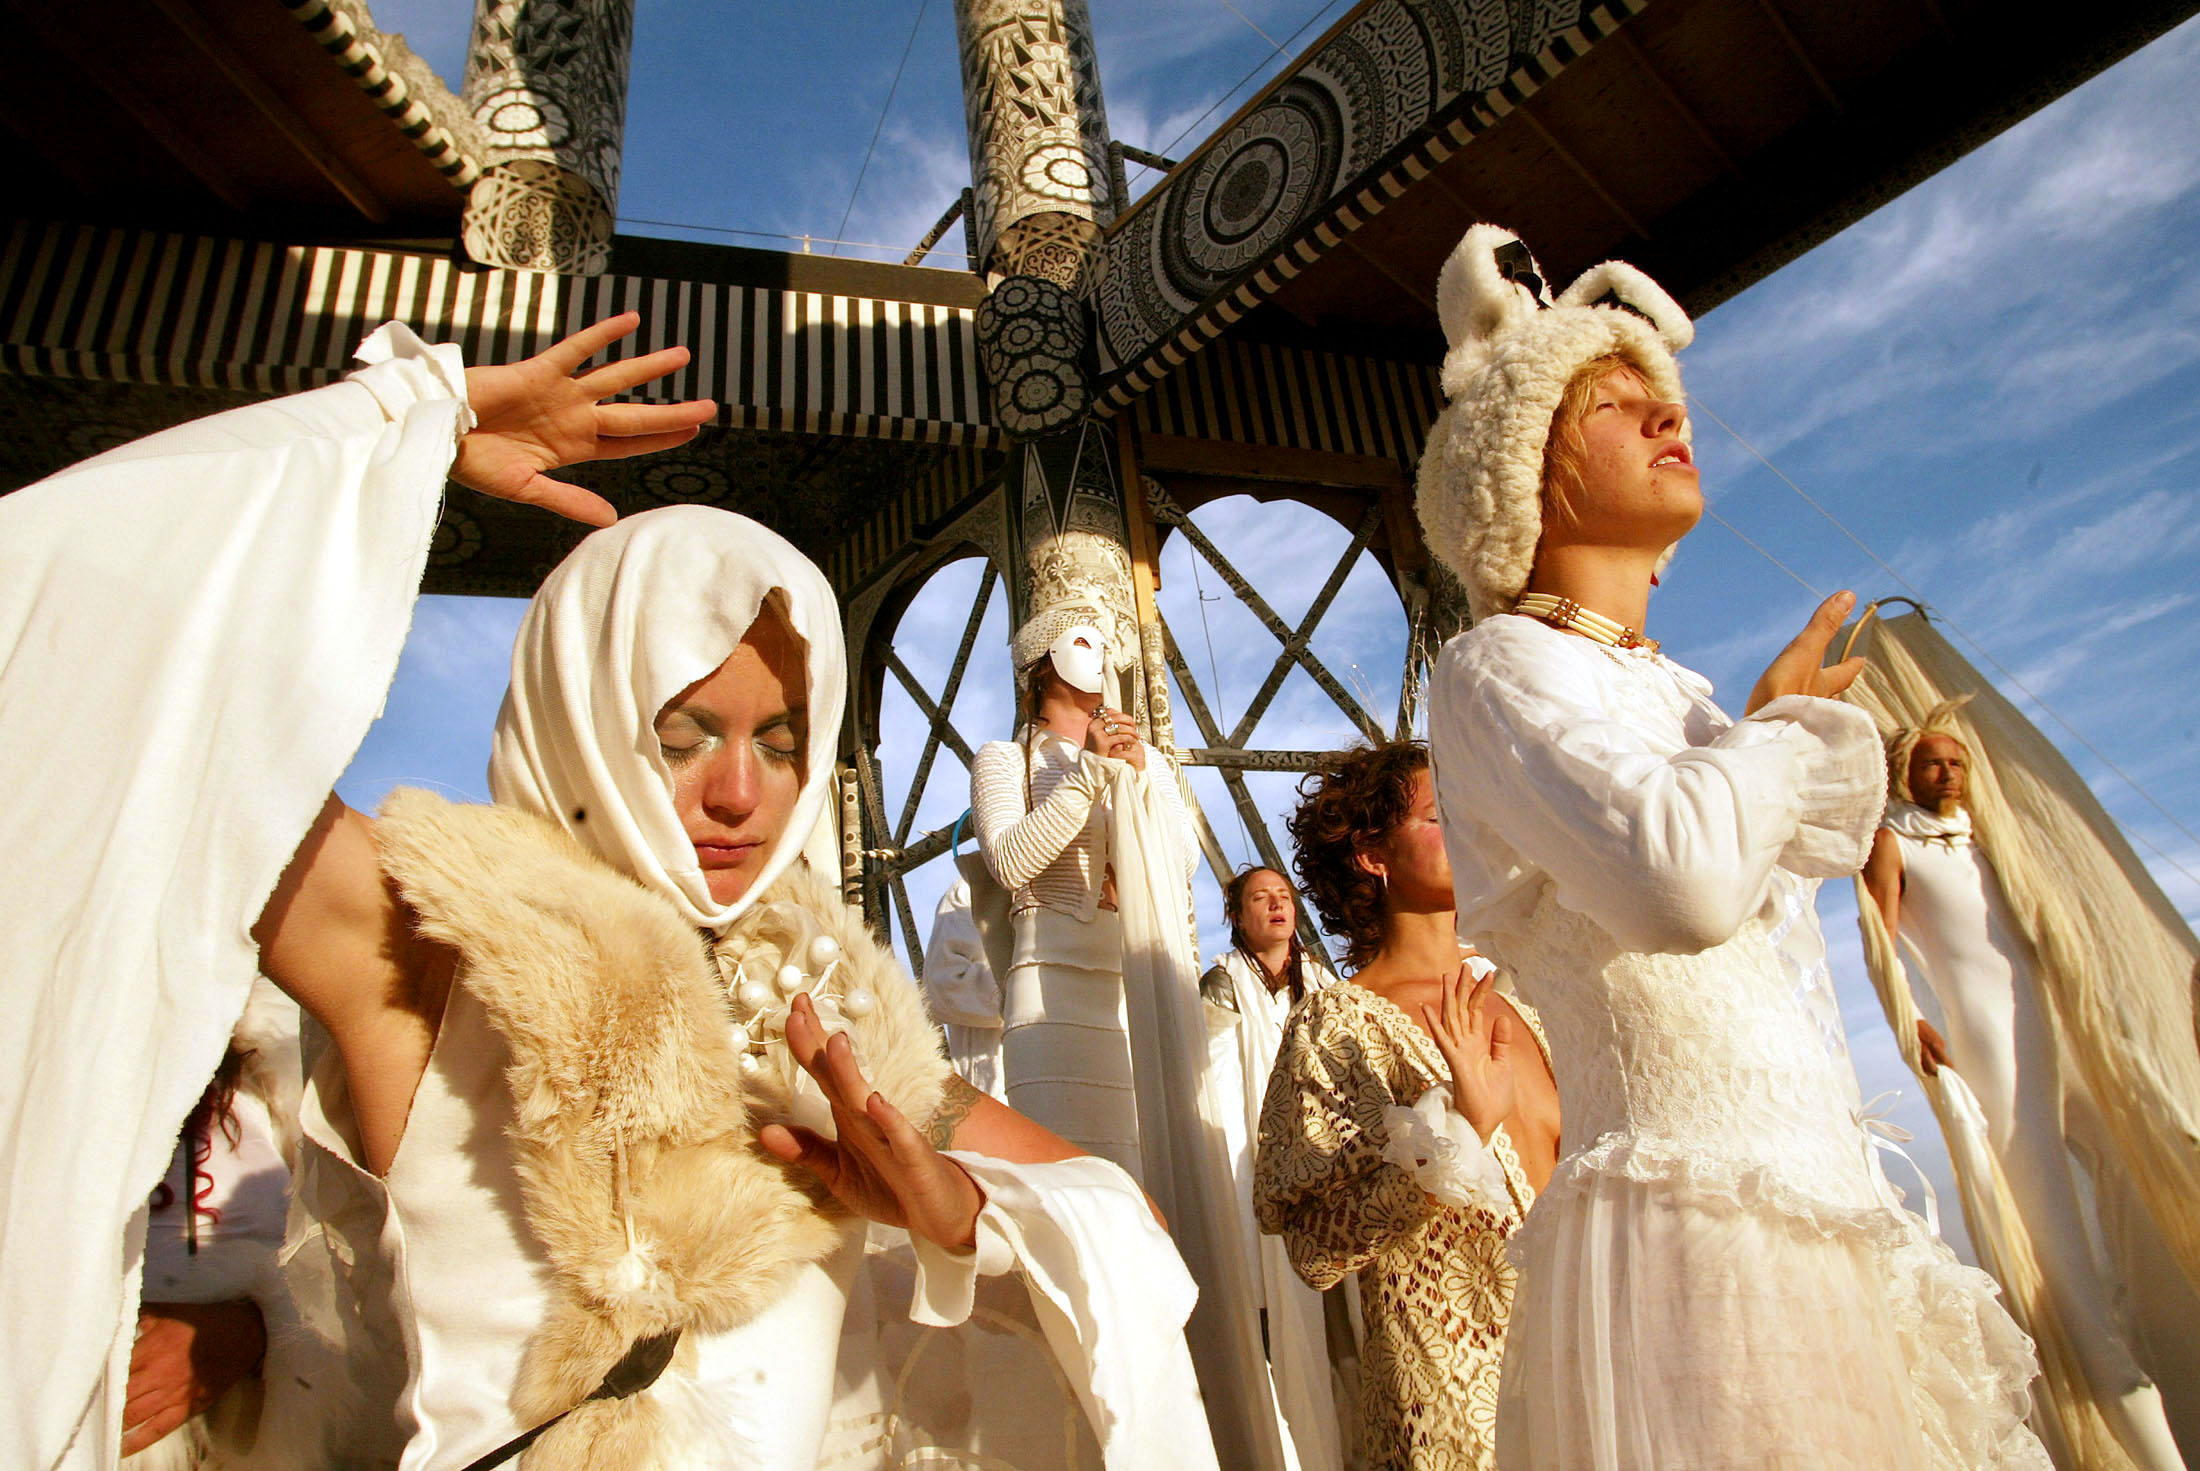 Members of the Naobi Village perform an early morning ritual at the Burning Man Festival in Black Ro..